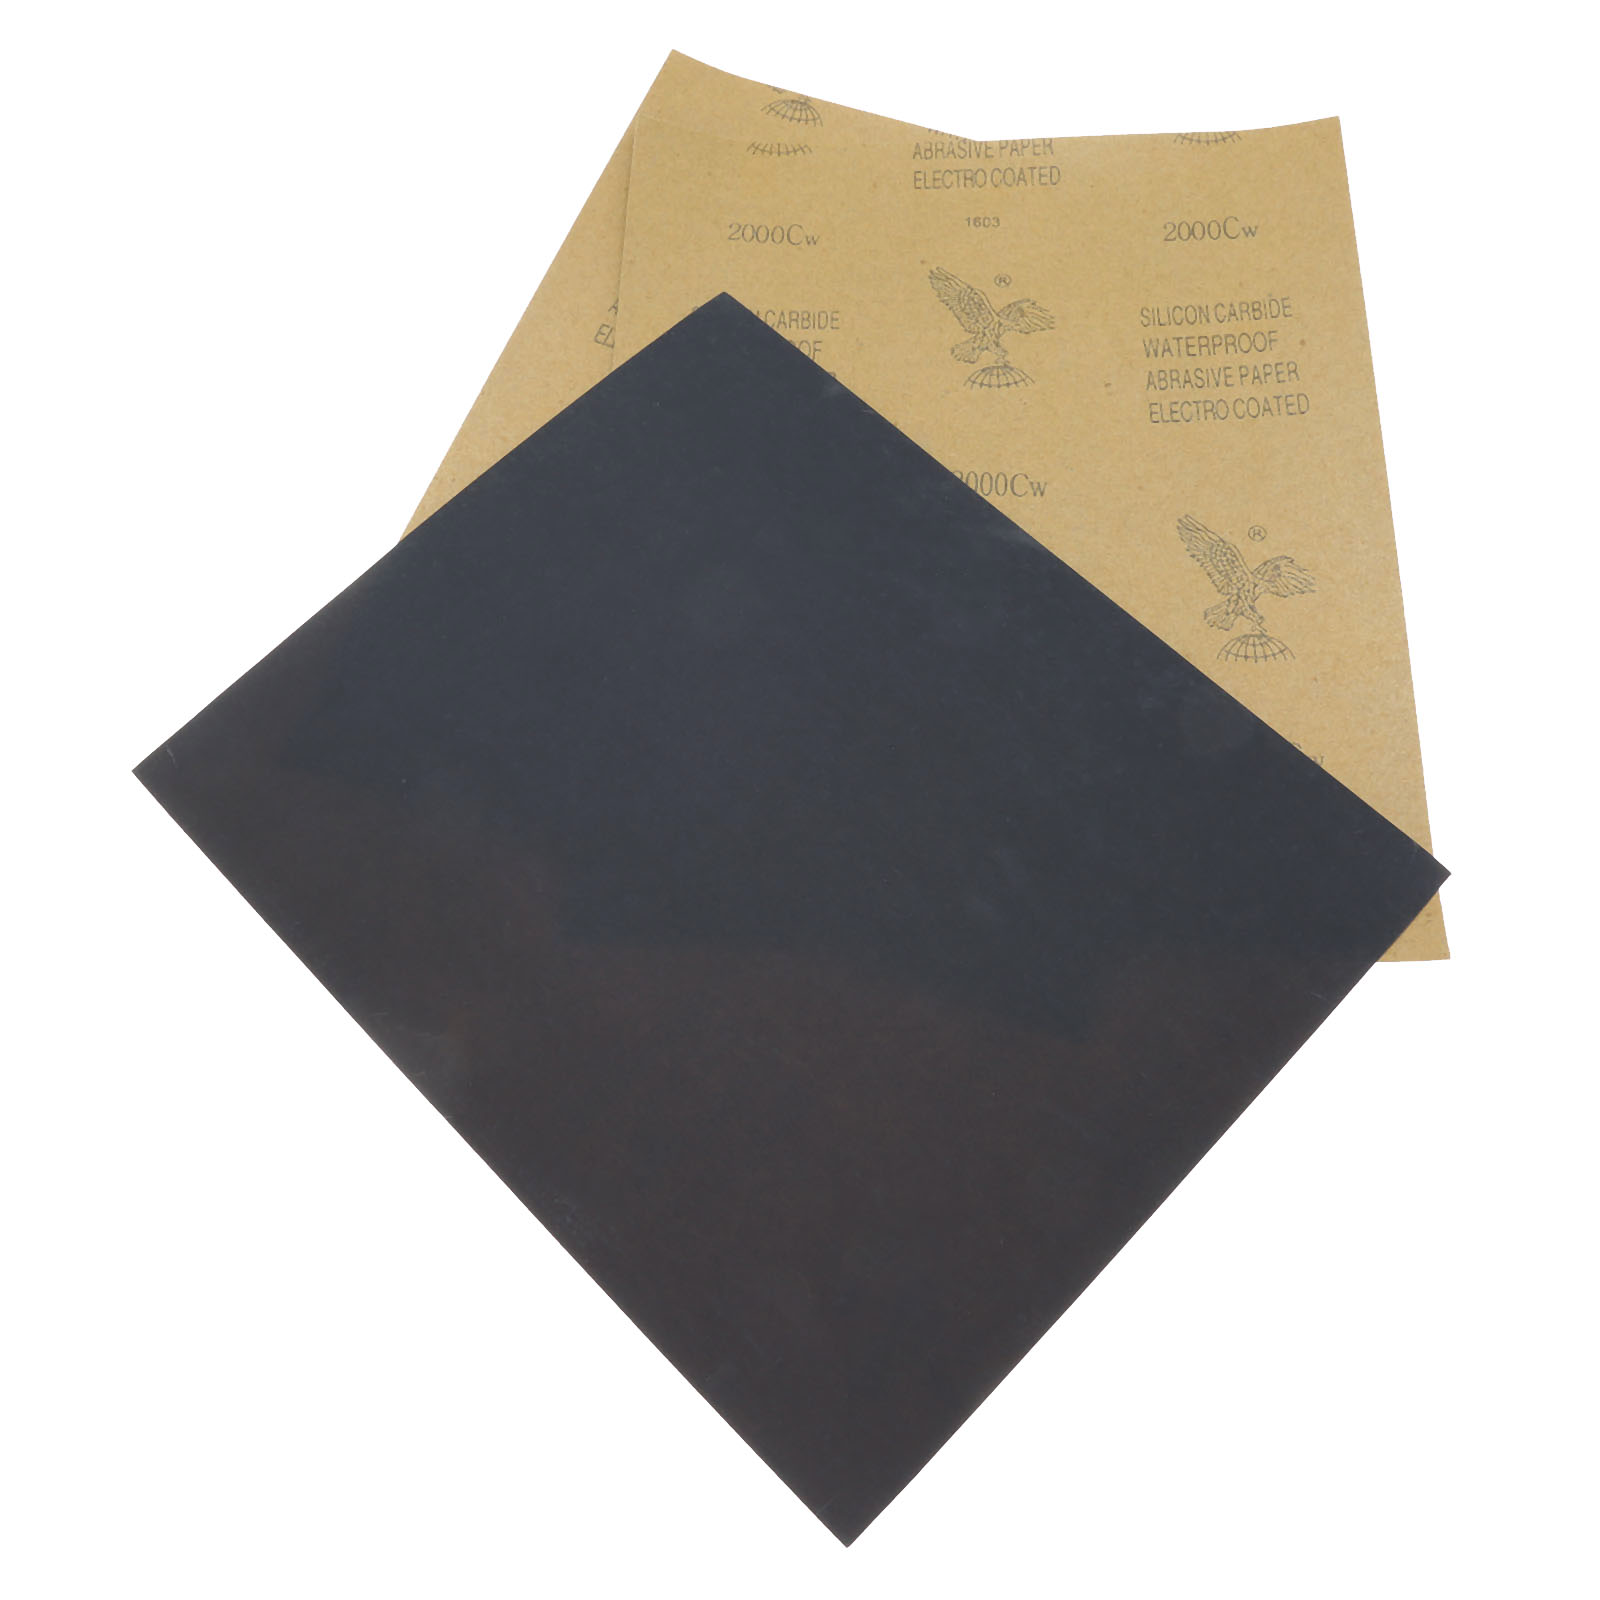 Dophee 3 Sheet Sandpaper Waterproof Abrasive Paper Sand Paper Silicone Carbide Polishing Grinding Wet/dry Tool 2000 Grit 28*23cm